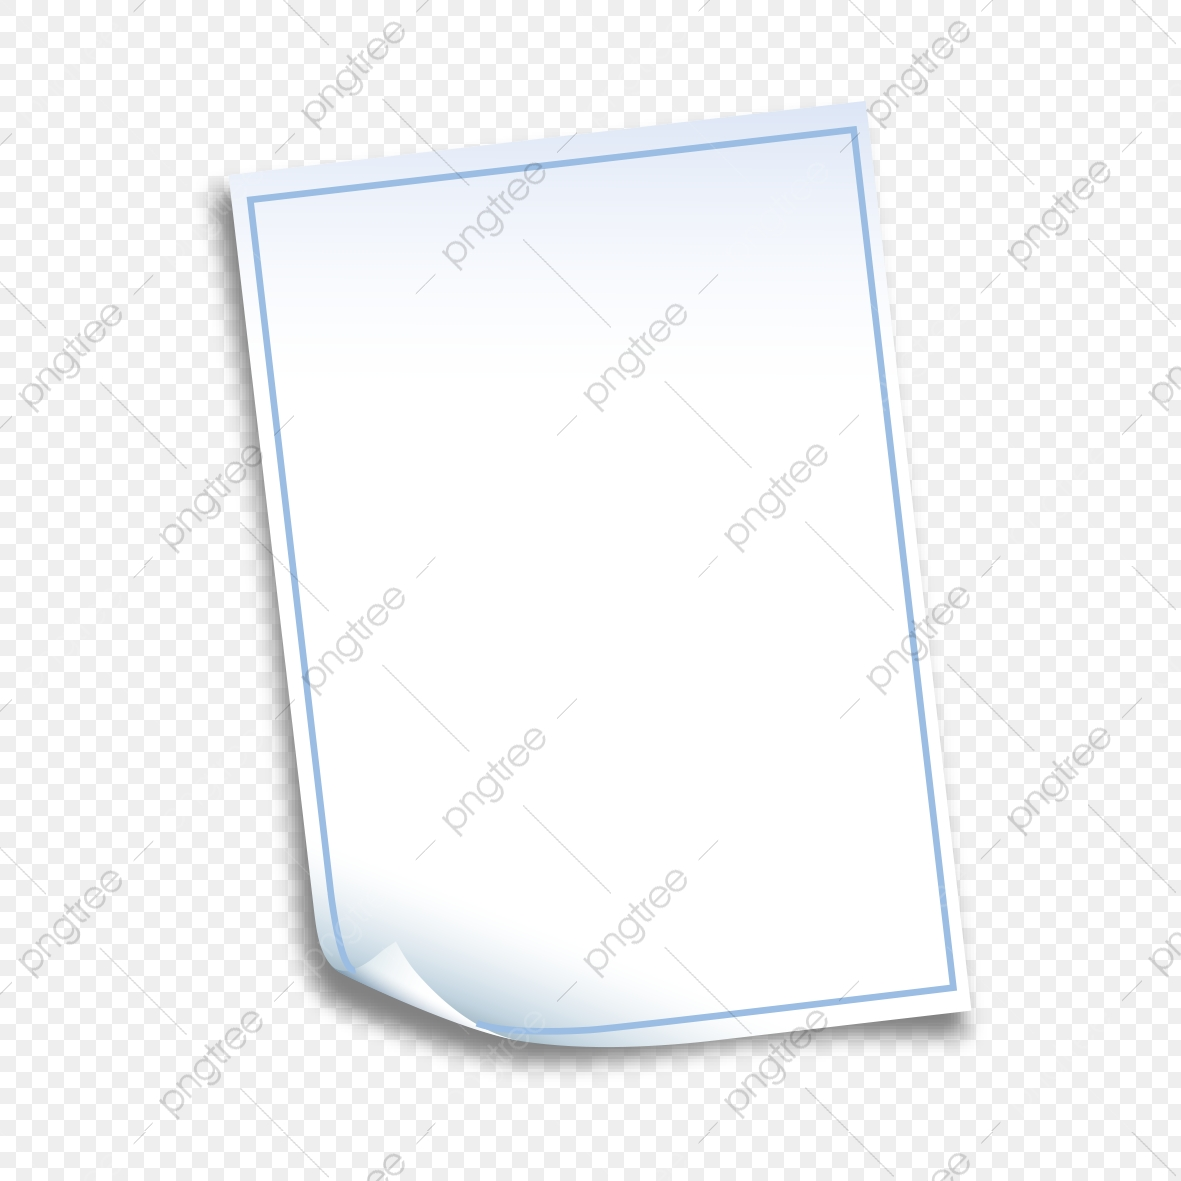 White Paper, White, Paper, Page PNG Transparent Image and.